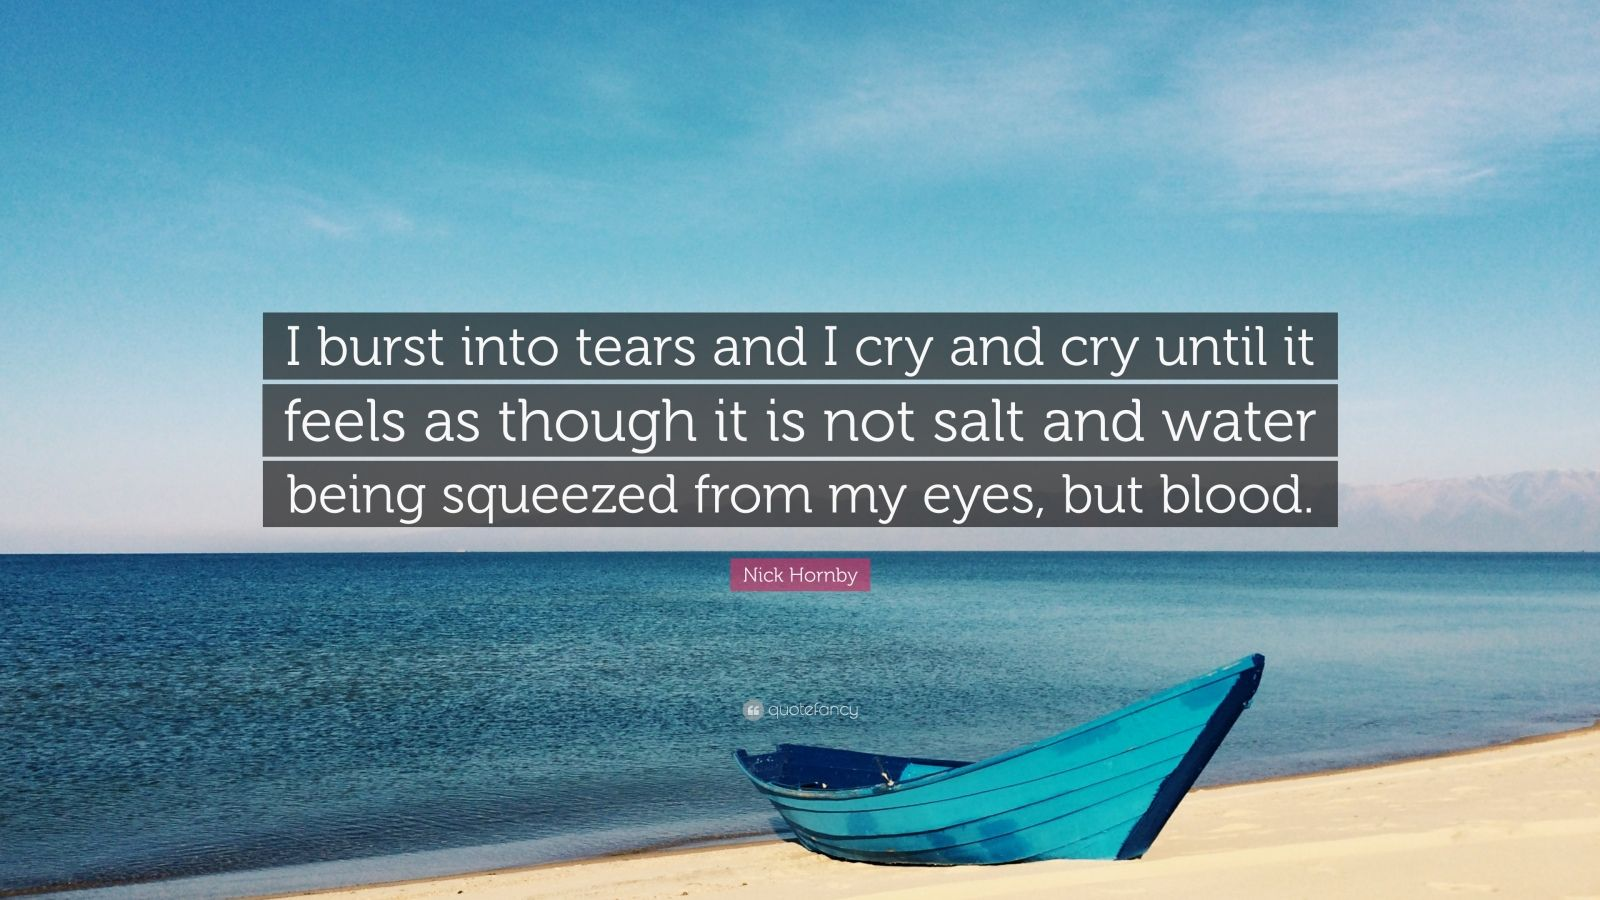 """Nick Hornby Quote: """"I burst into tears and I cry and cry until it feels as though it is not salt and water being squeezed from my eyes, but blood."""""""